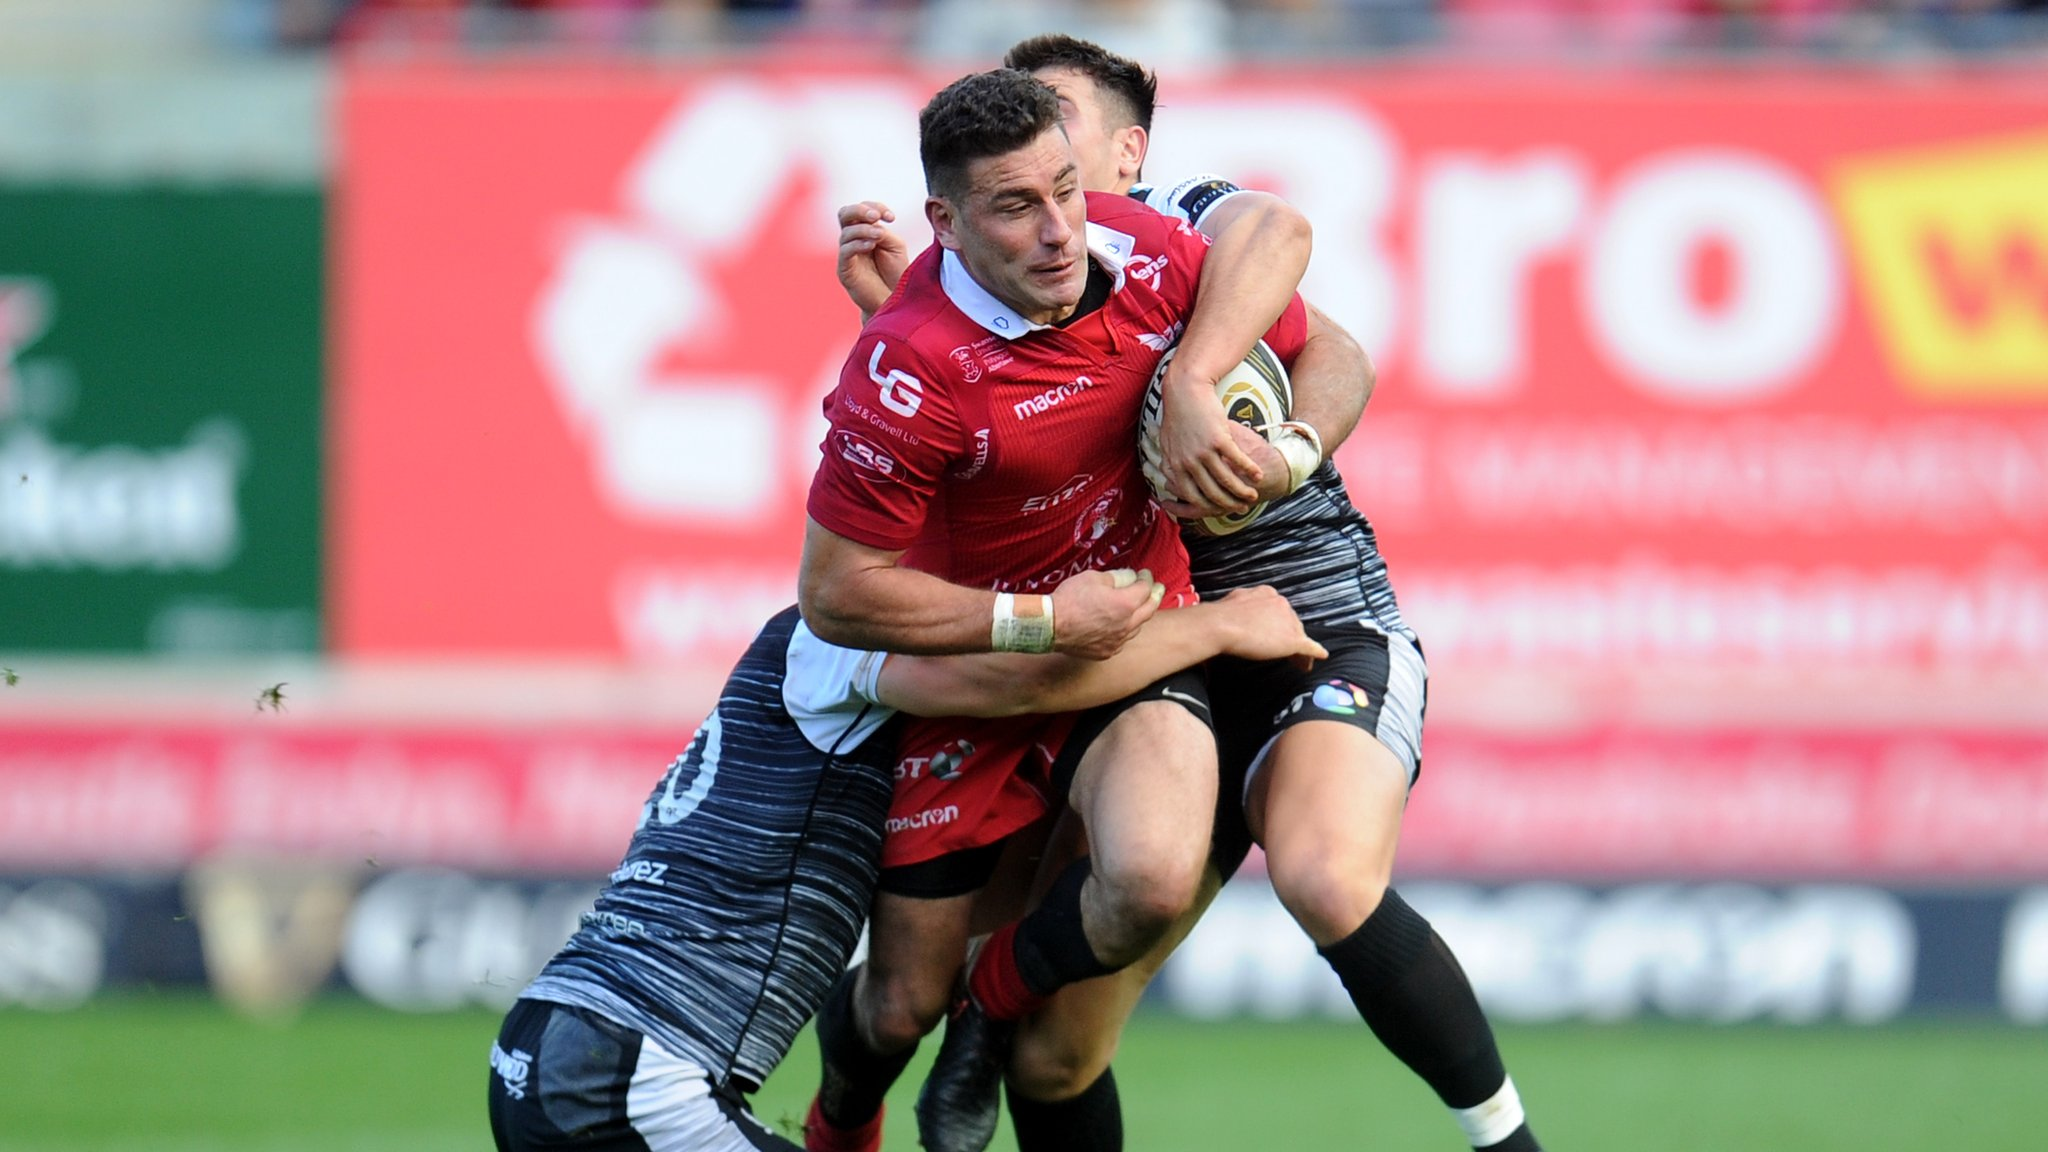 Scarlets missing 19 players for Southern Kings Pro14 trip